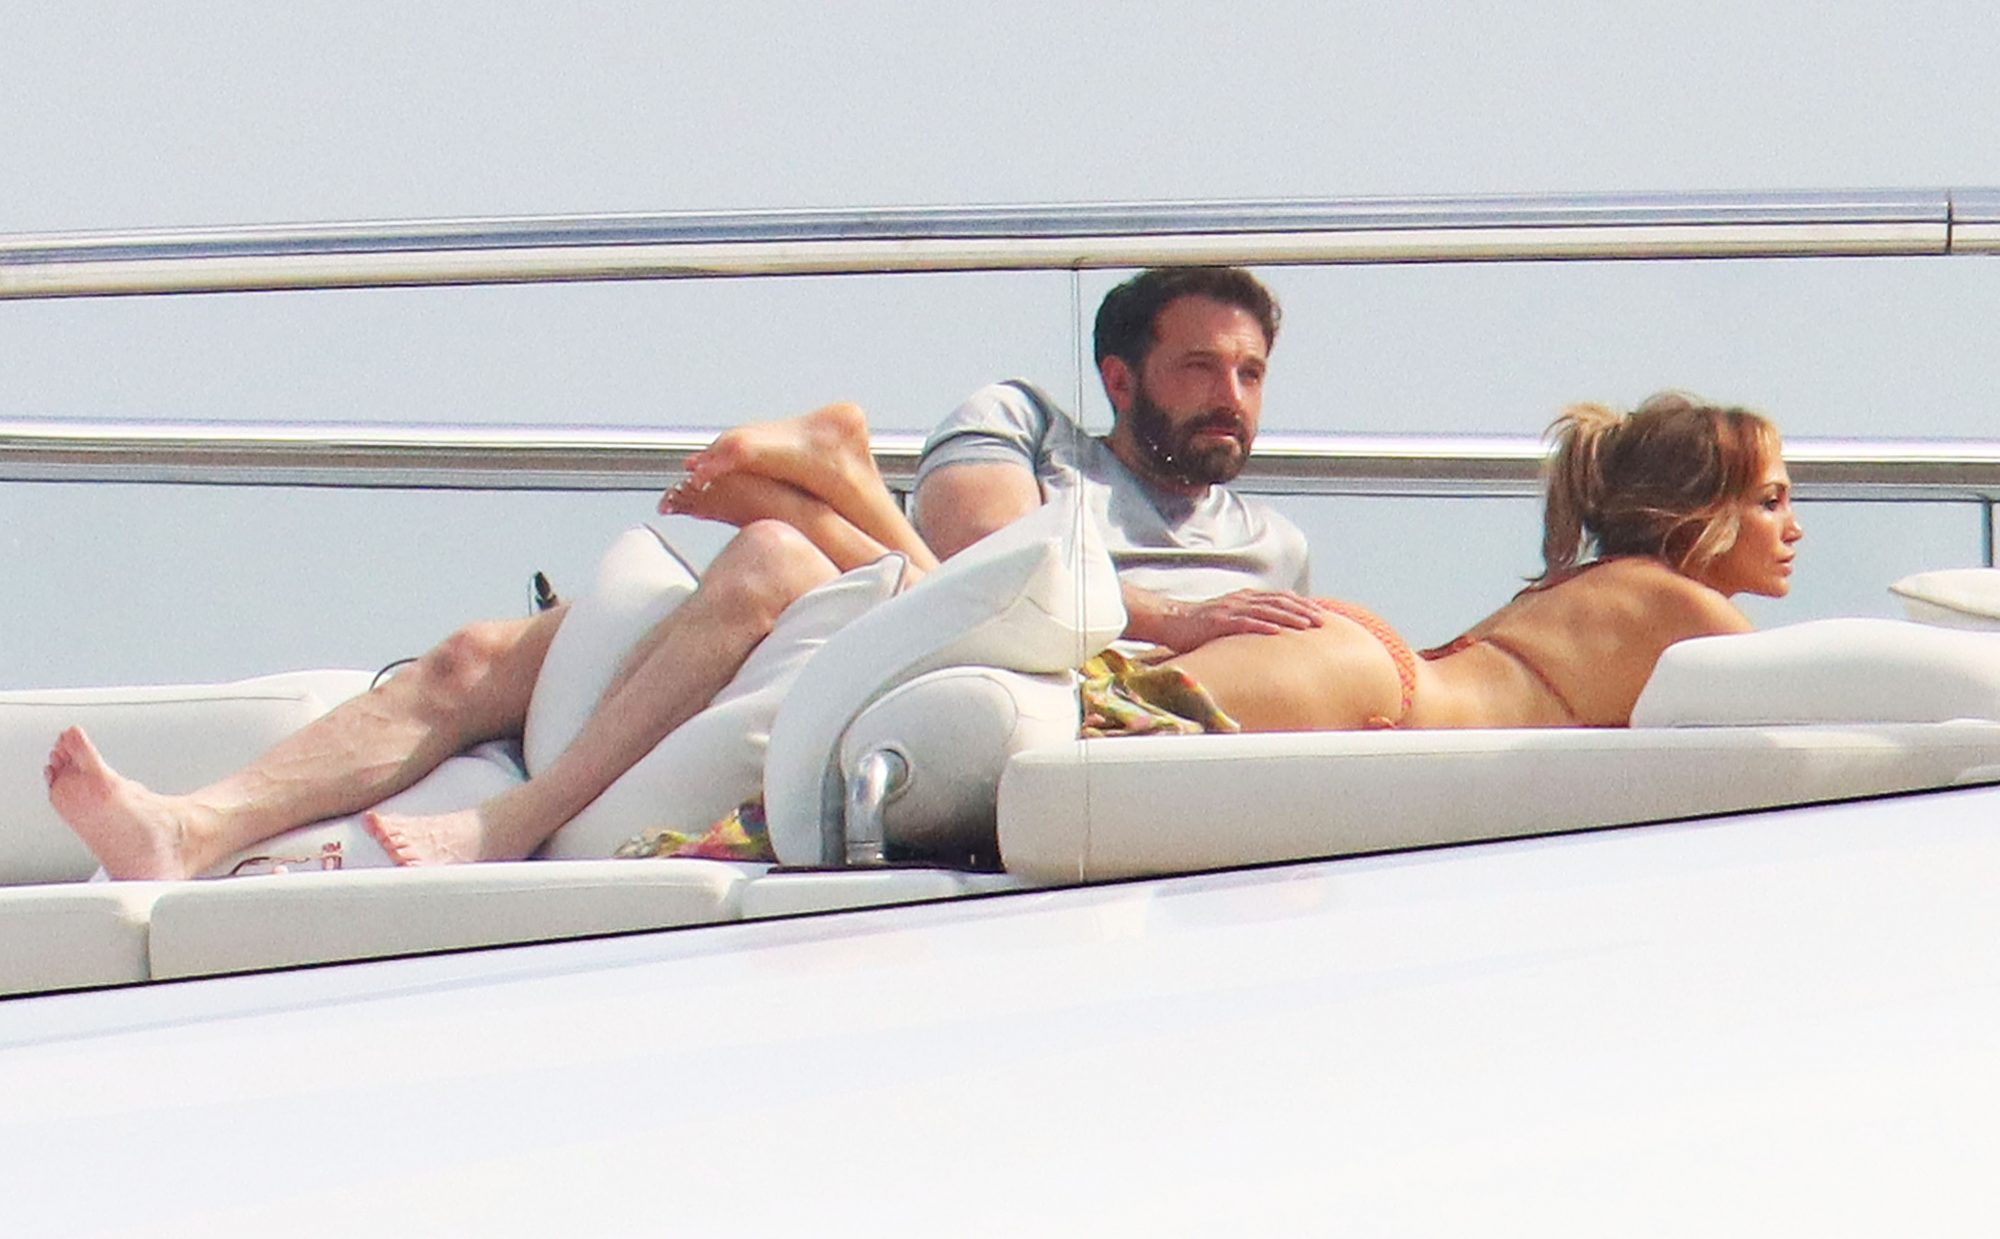 Ben Affleck and Jennifer Lopez Put on Some Serious PDA in Saint-Tropez